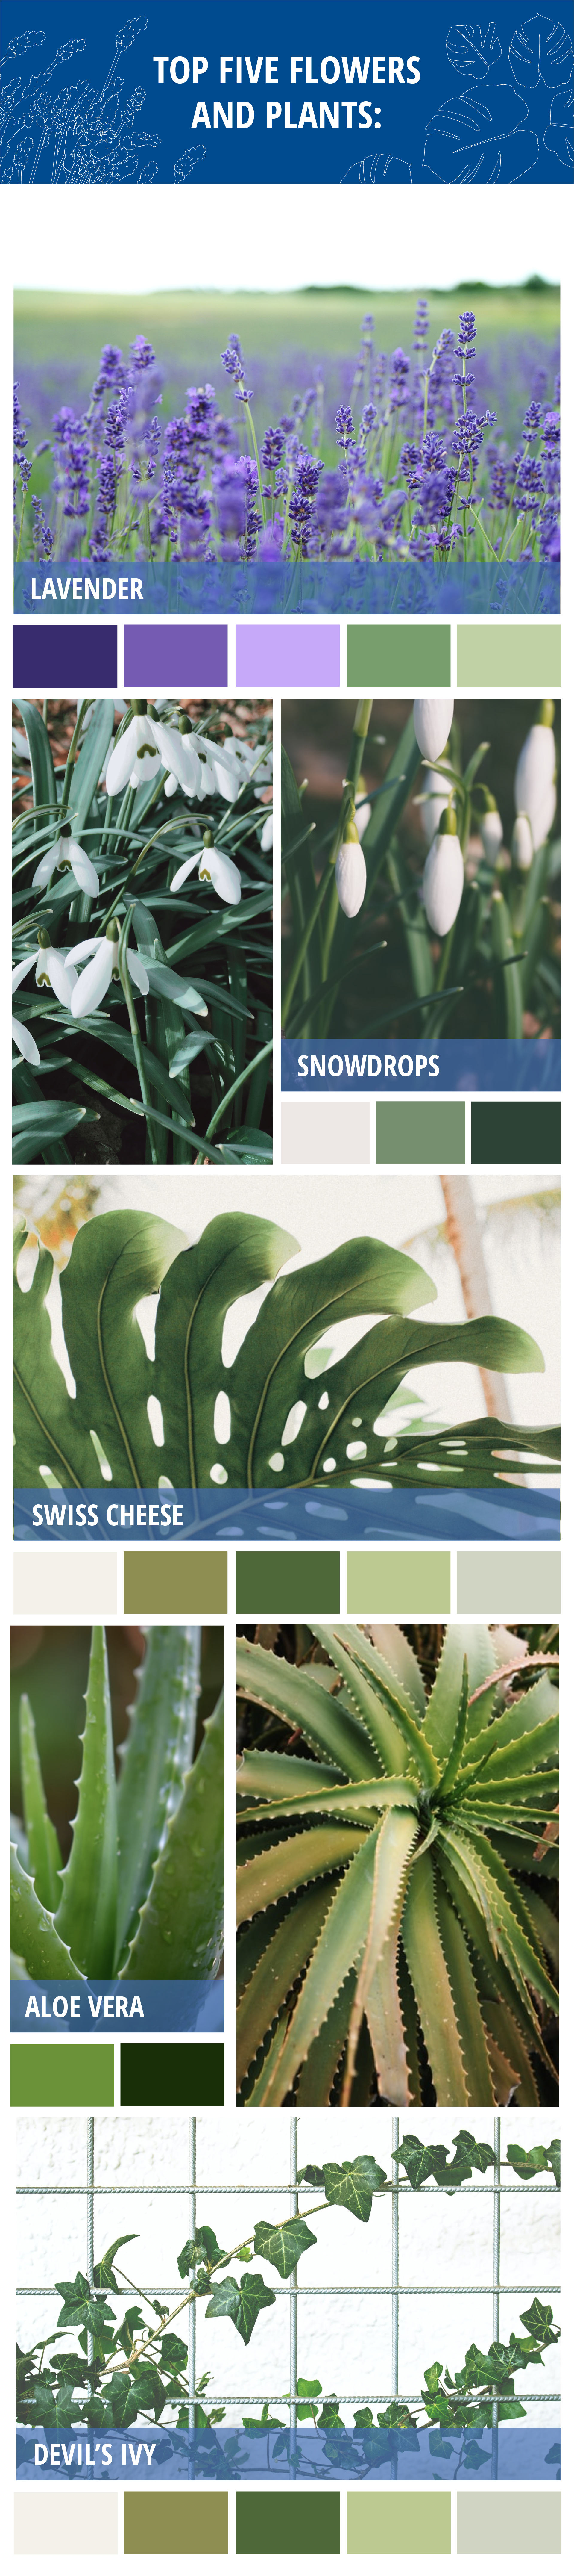 top five flowers and plants